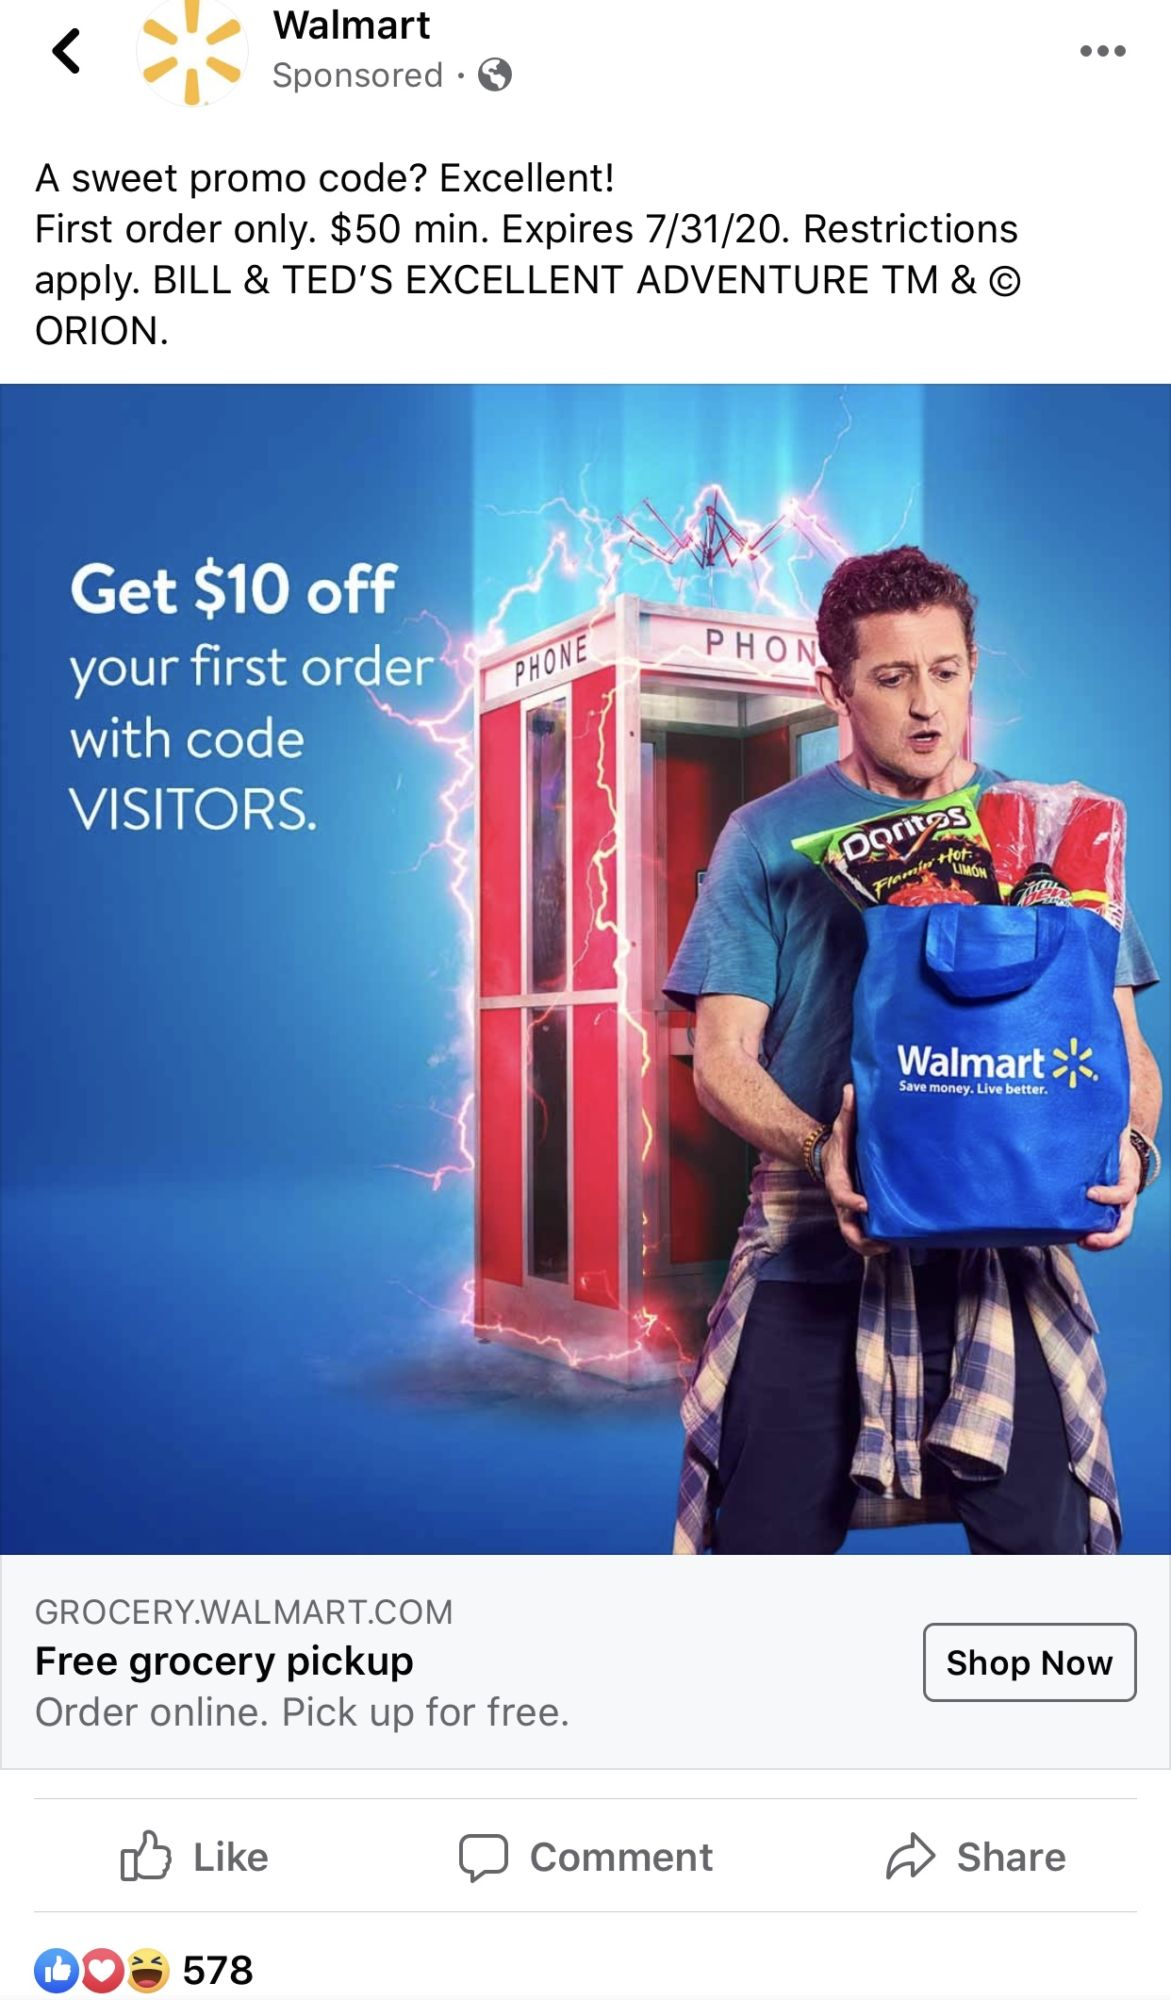 Bill and Ted's New Journey Includes Advertising For Walmart